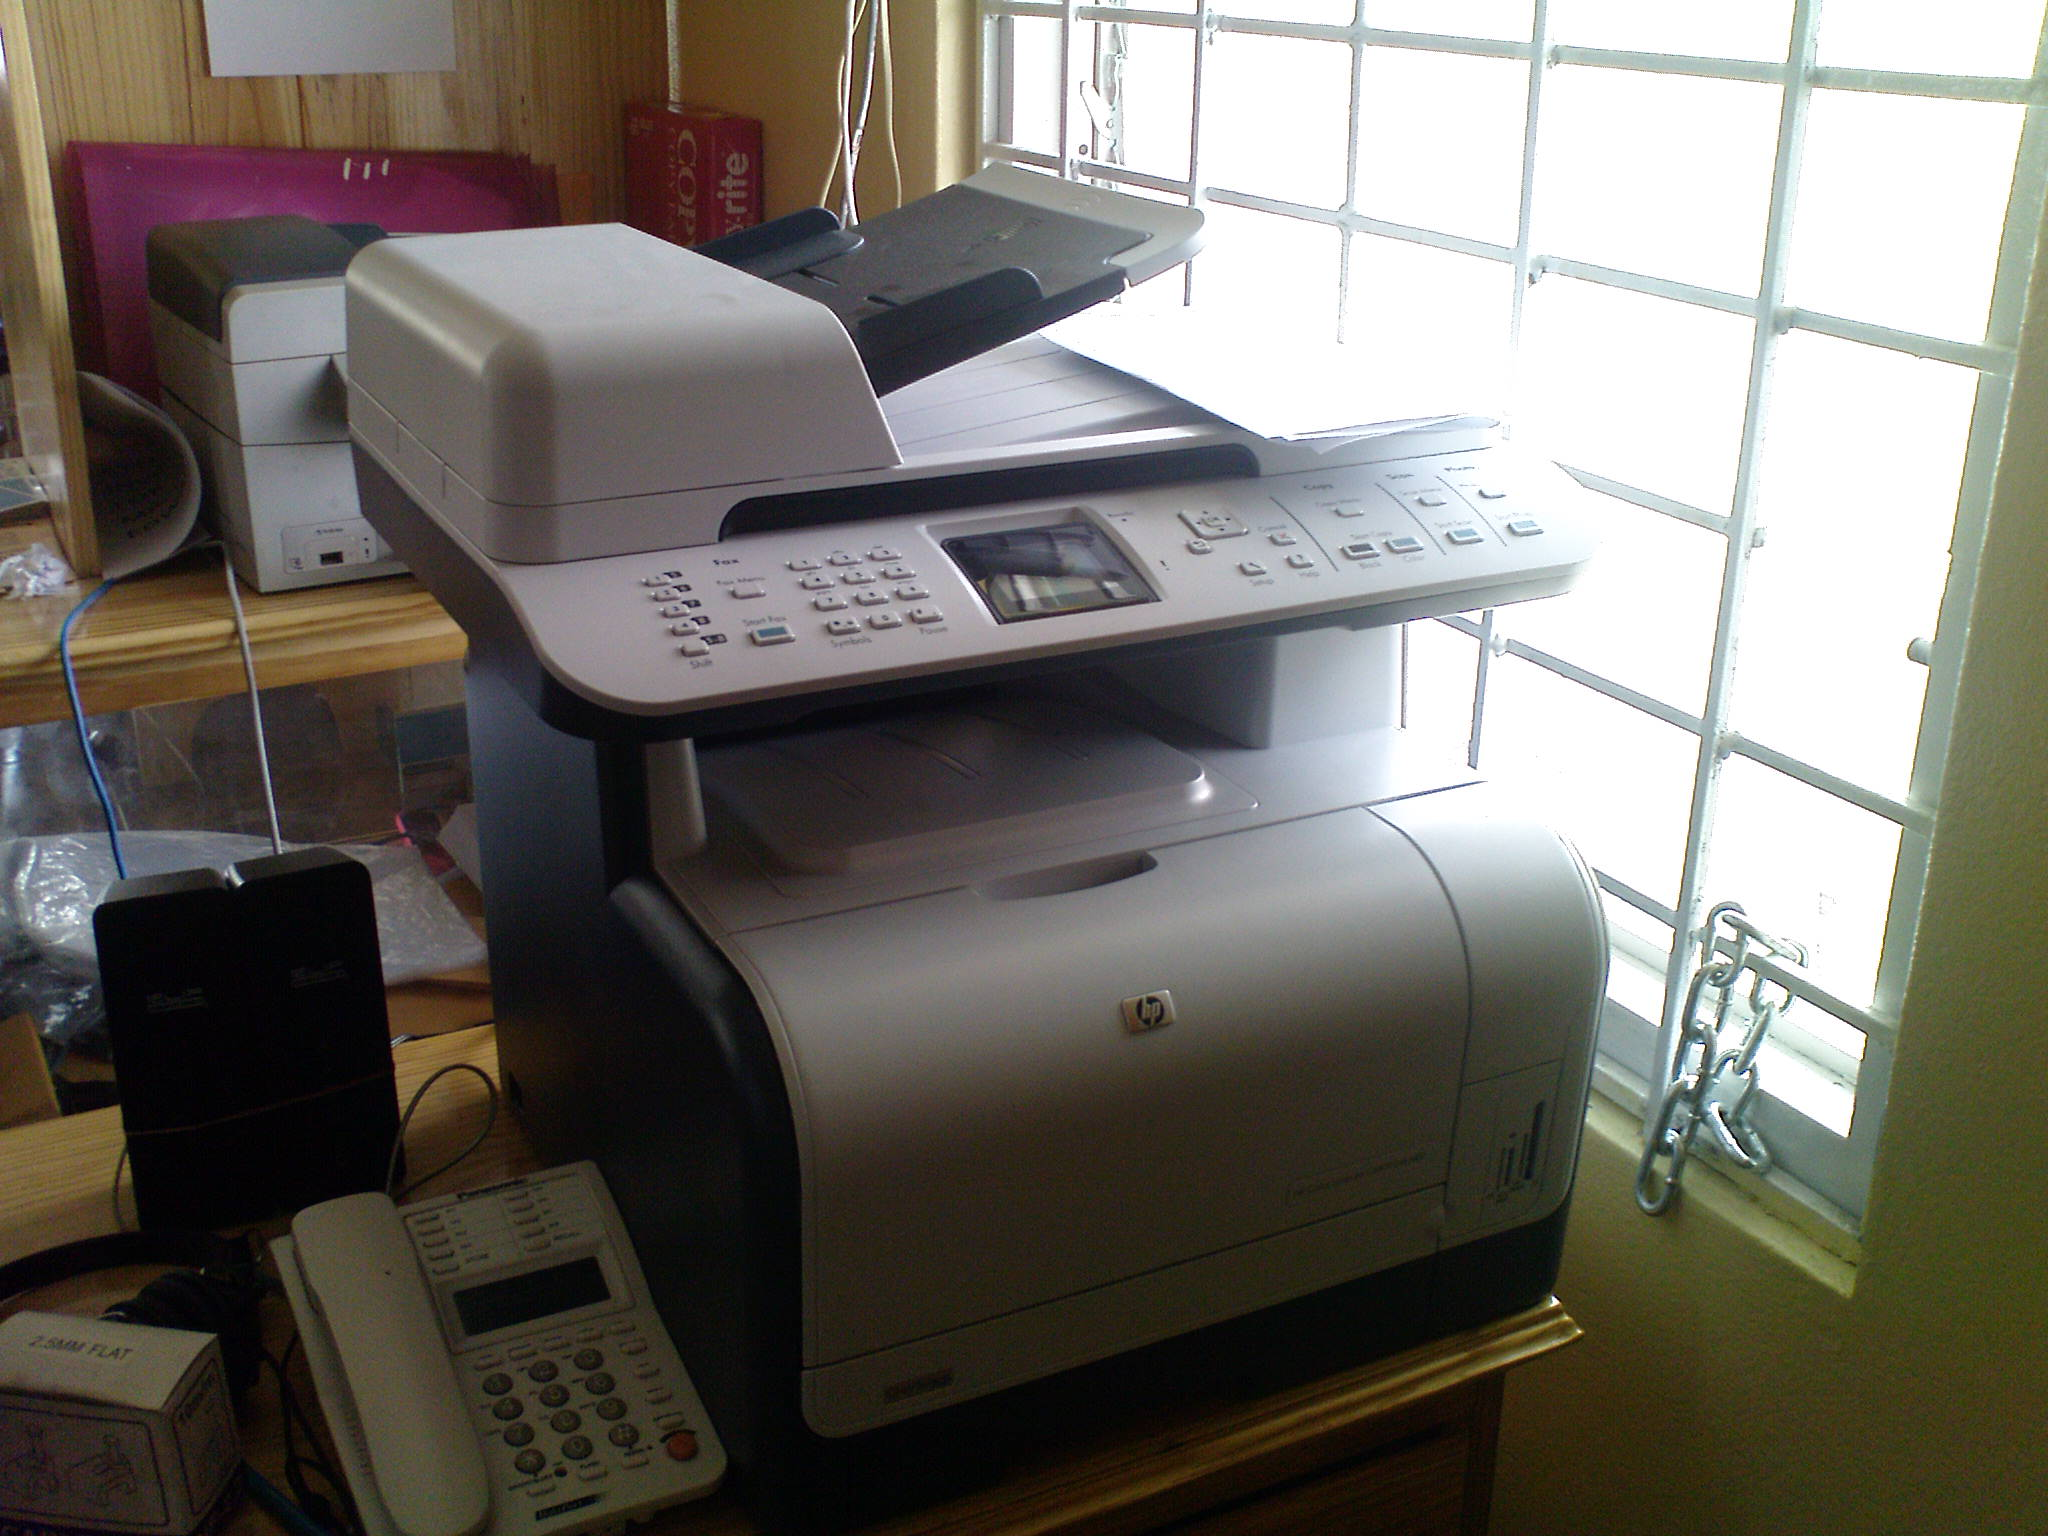 Flowers_internet _Cafe_Ocho_ Rios_HP Laser_printer